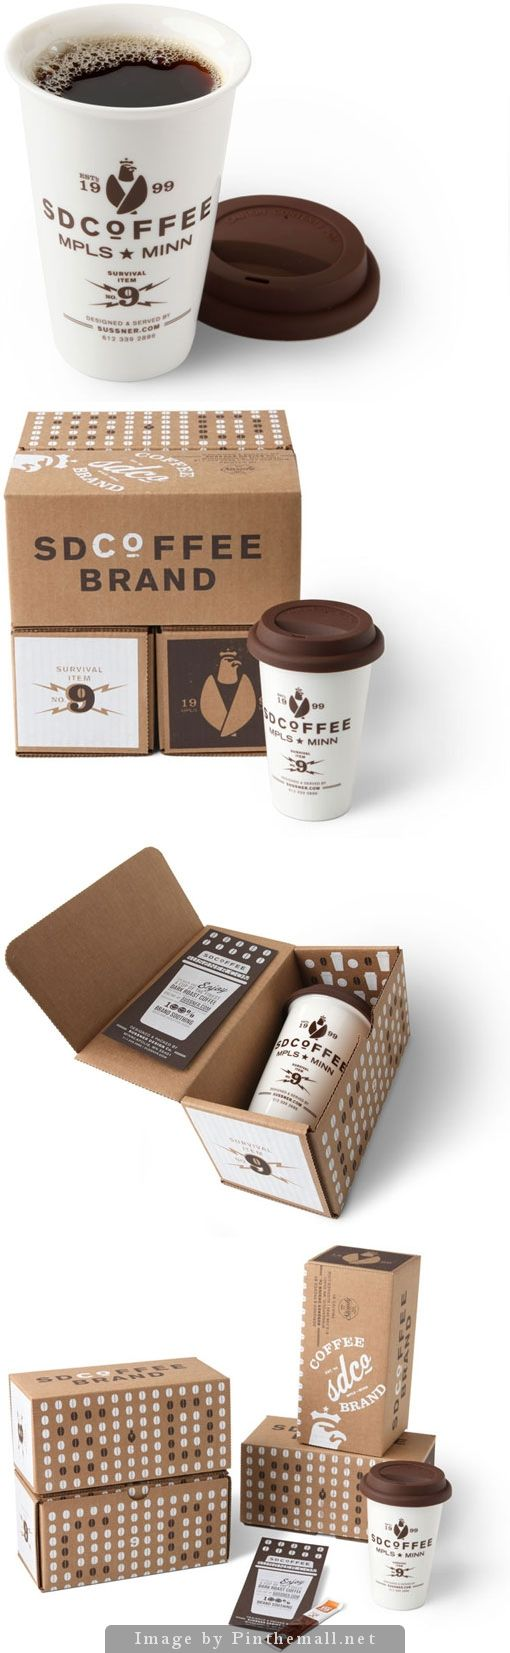 S&D coffee self promotional branding and packaging by Sussner Design curated by Packaging Diva PD created via http://www.designworklife.com/2011/03/25/sussner-desig09n-sdcoffee/